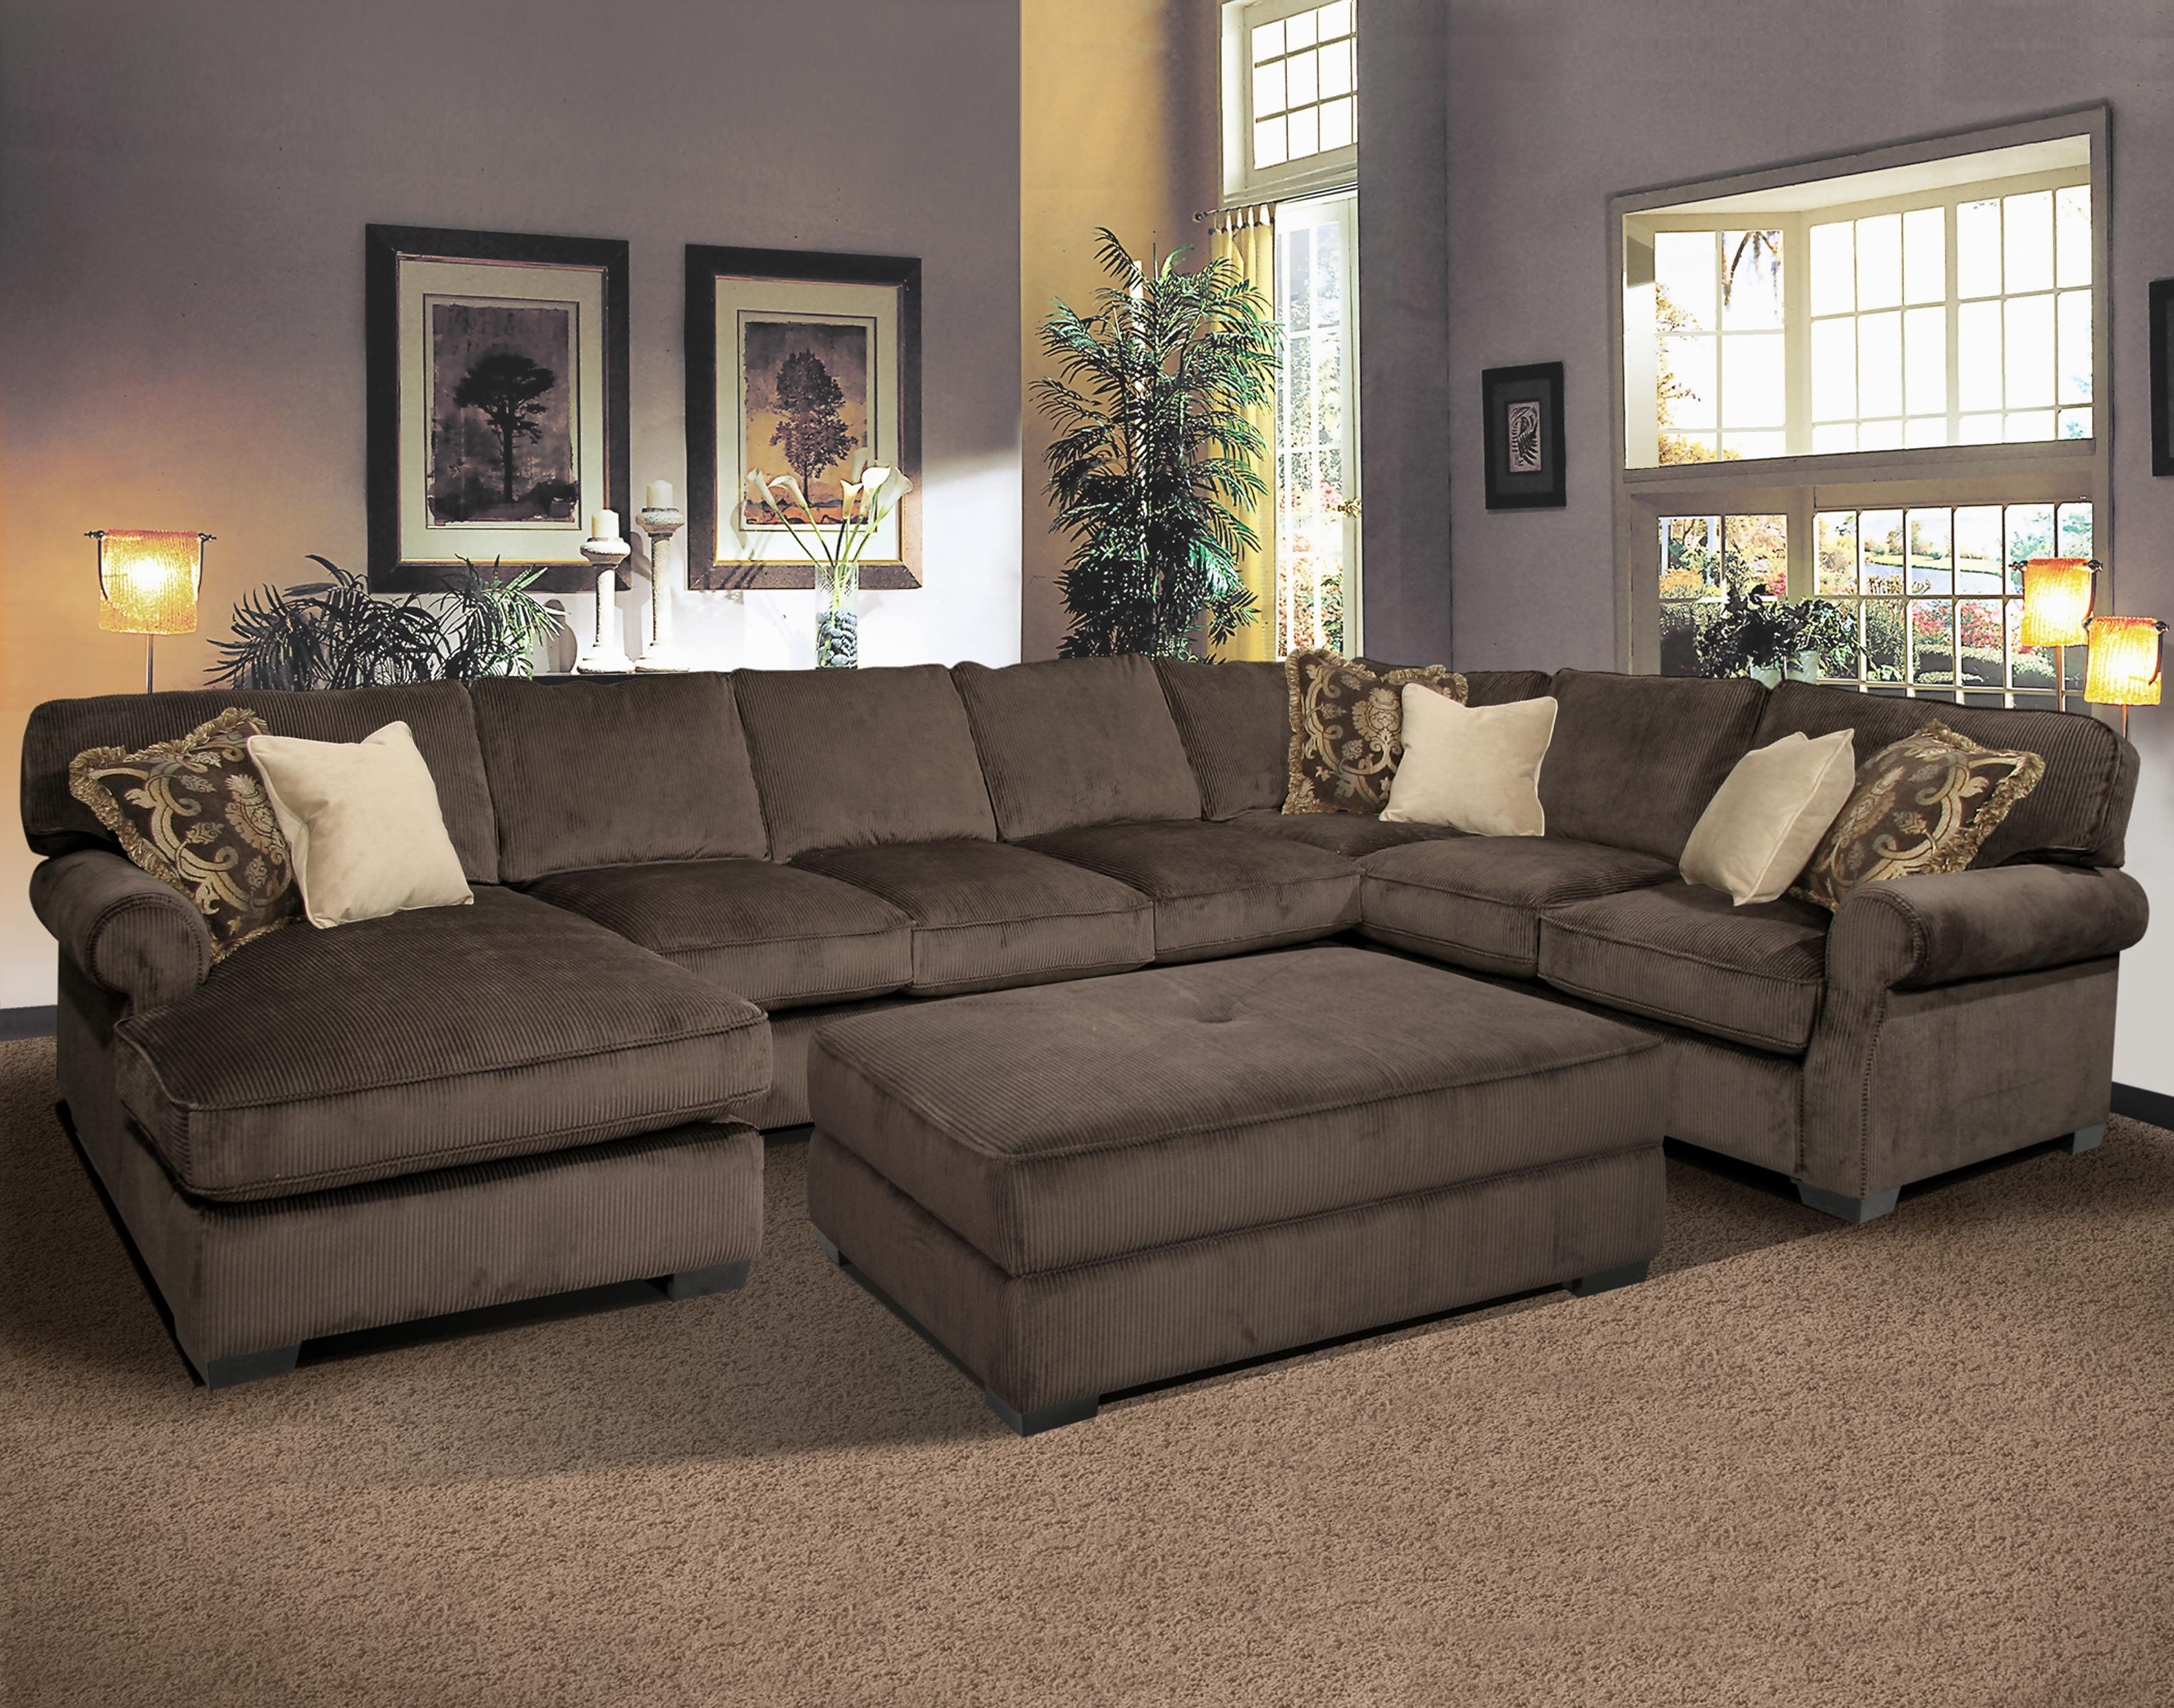 Sectional Couches With Chaise With 2018 Attractive Sectional Sleeper Sofa With Chaise Fantastic Furniture (View 11 of 15)